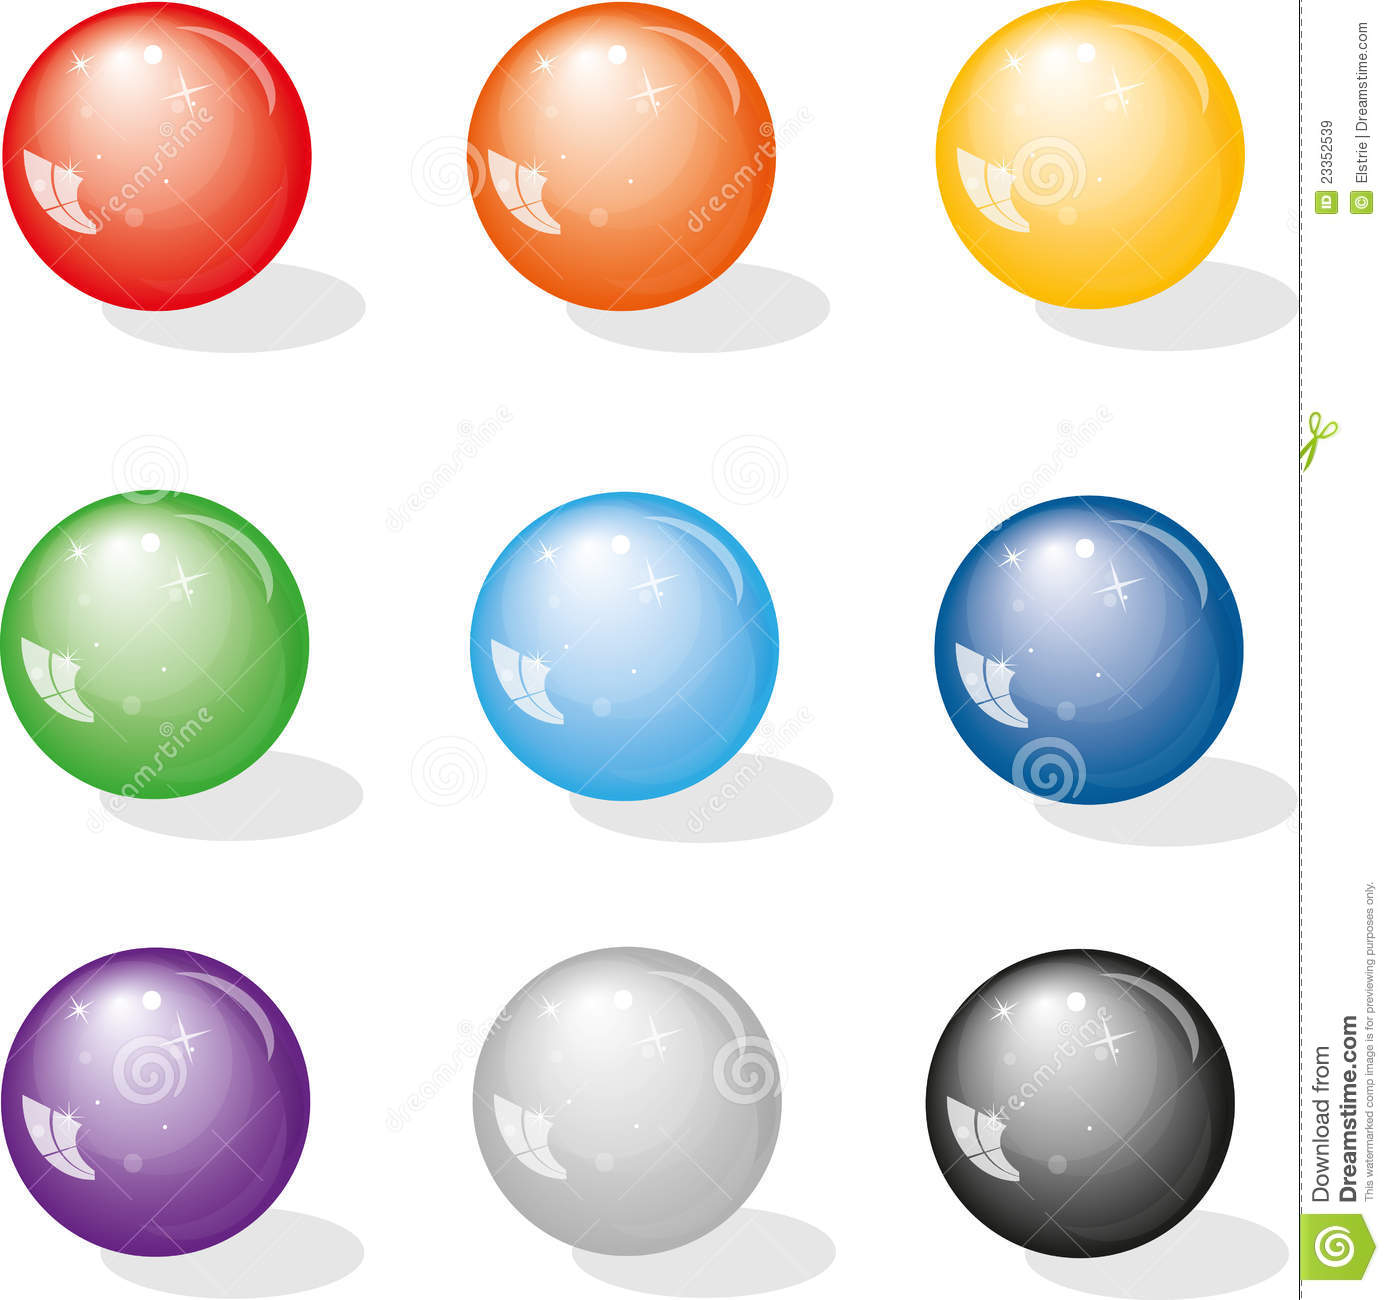 Glass marbles clipart #16